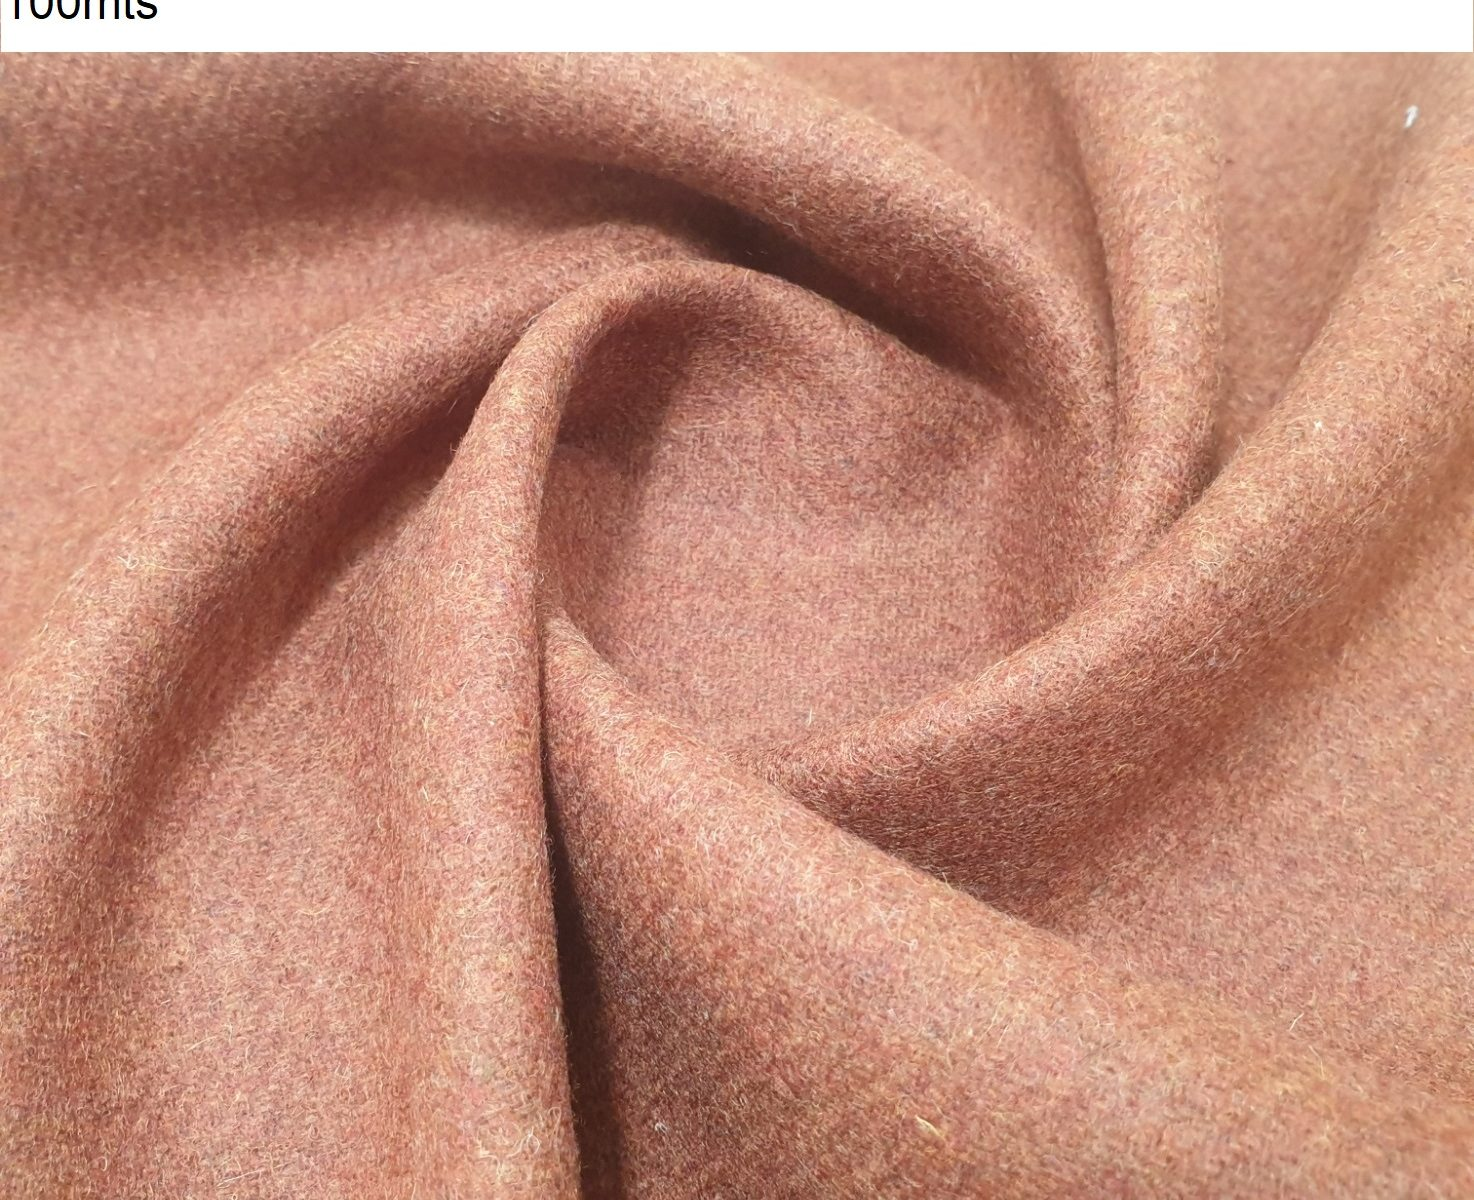 7761-rust-wool-blend-fabric-for-coats-WIDTH-cm140-WEIGHT-gr540-gr385-square-meter-COMPOSITION-62-wool-38-polyammide-100mts